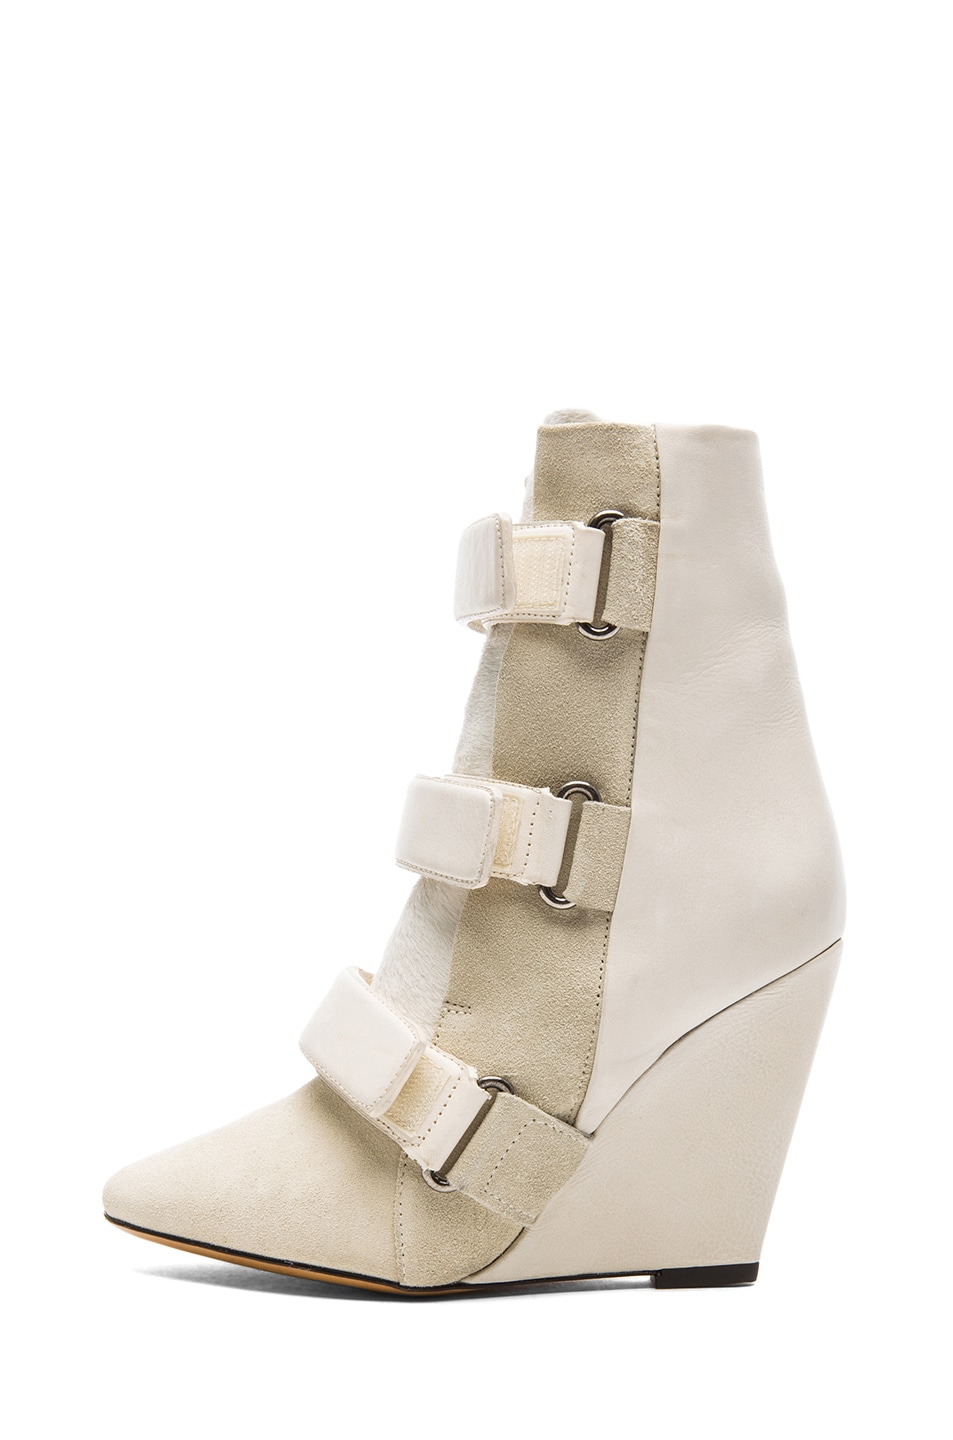 Image 1 of Isabel Marant Scarlet Calfskin Suede Leather Wedge Booties in Ecru